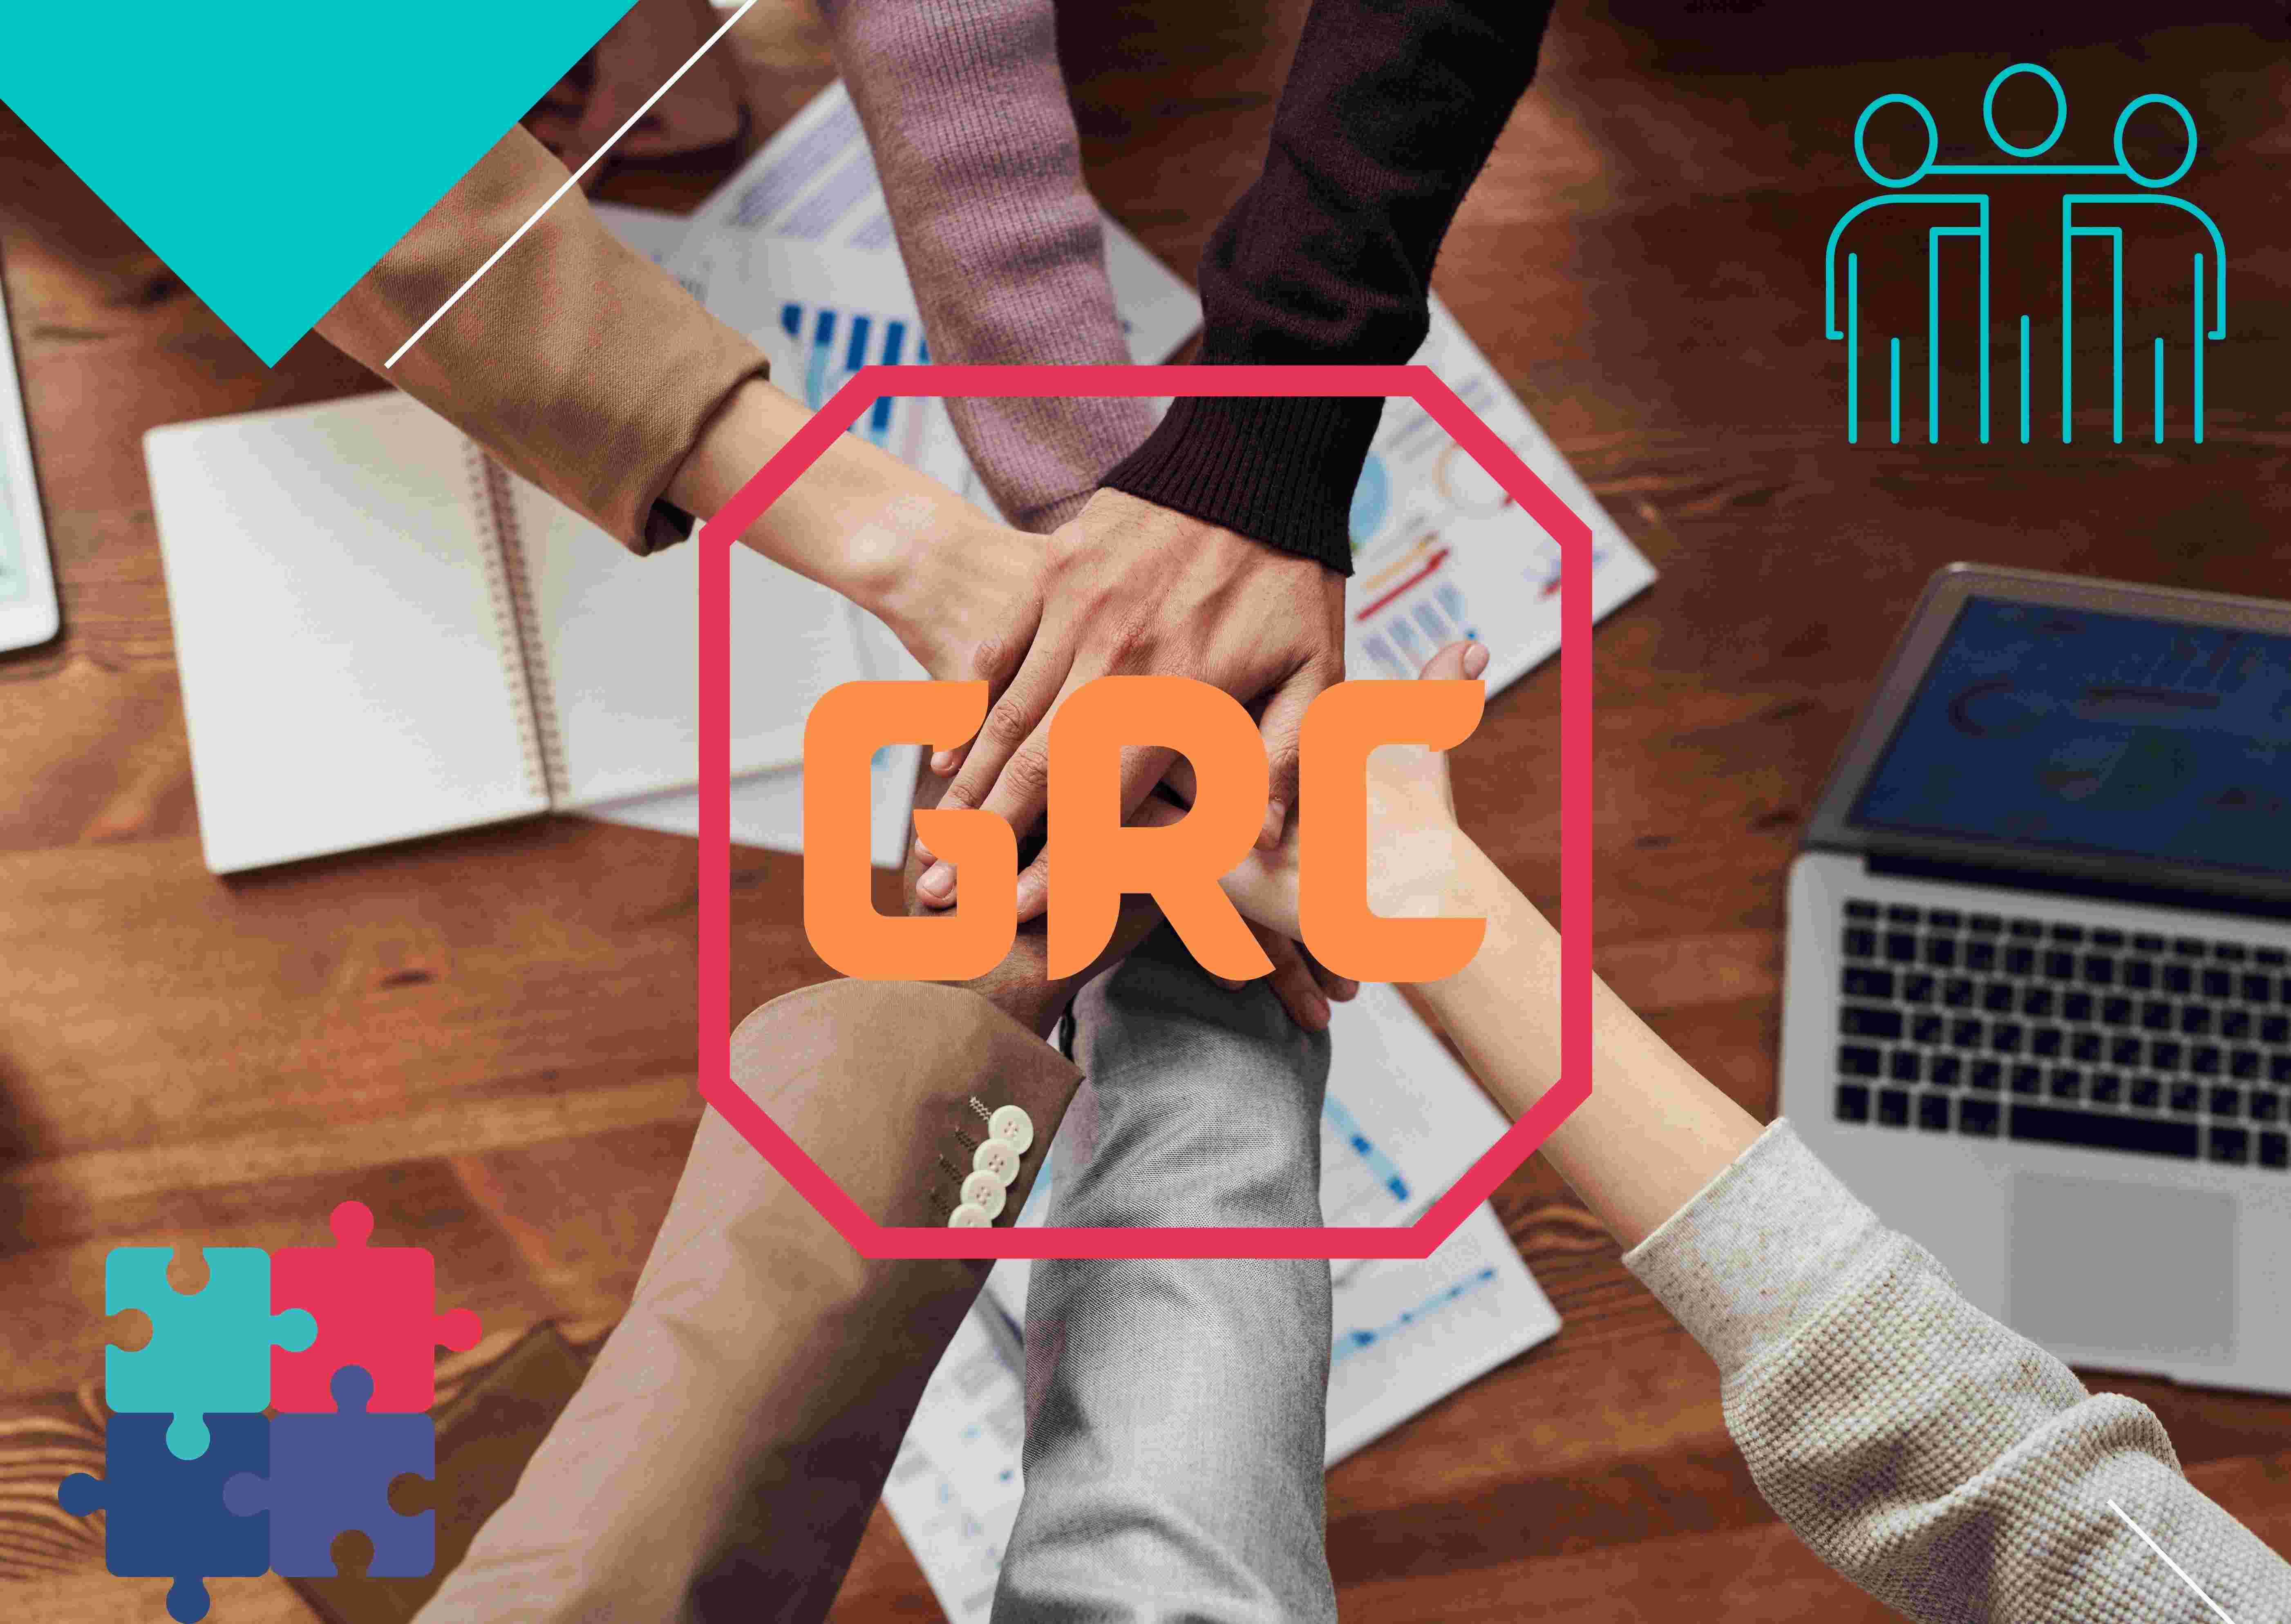 About GRC